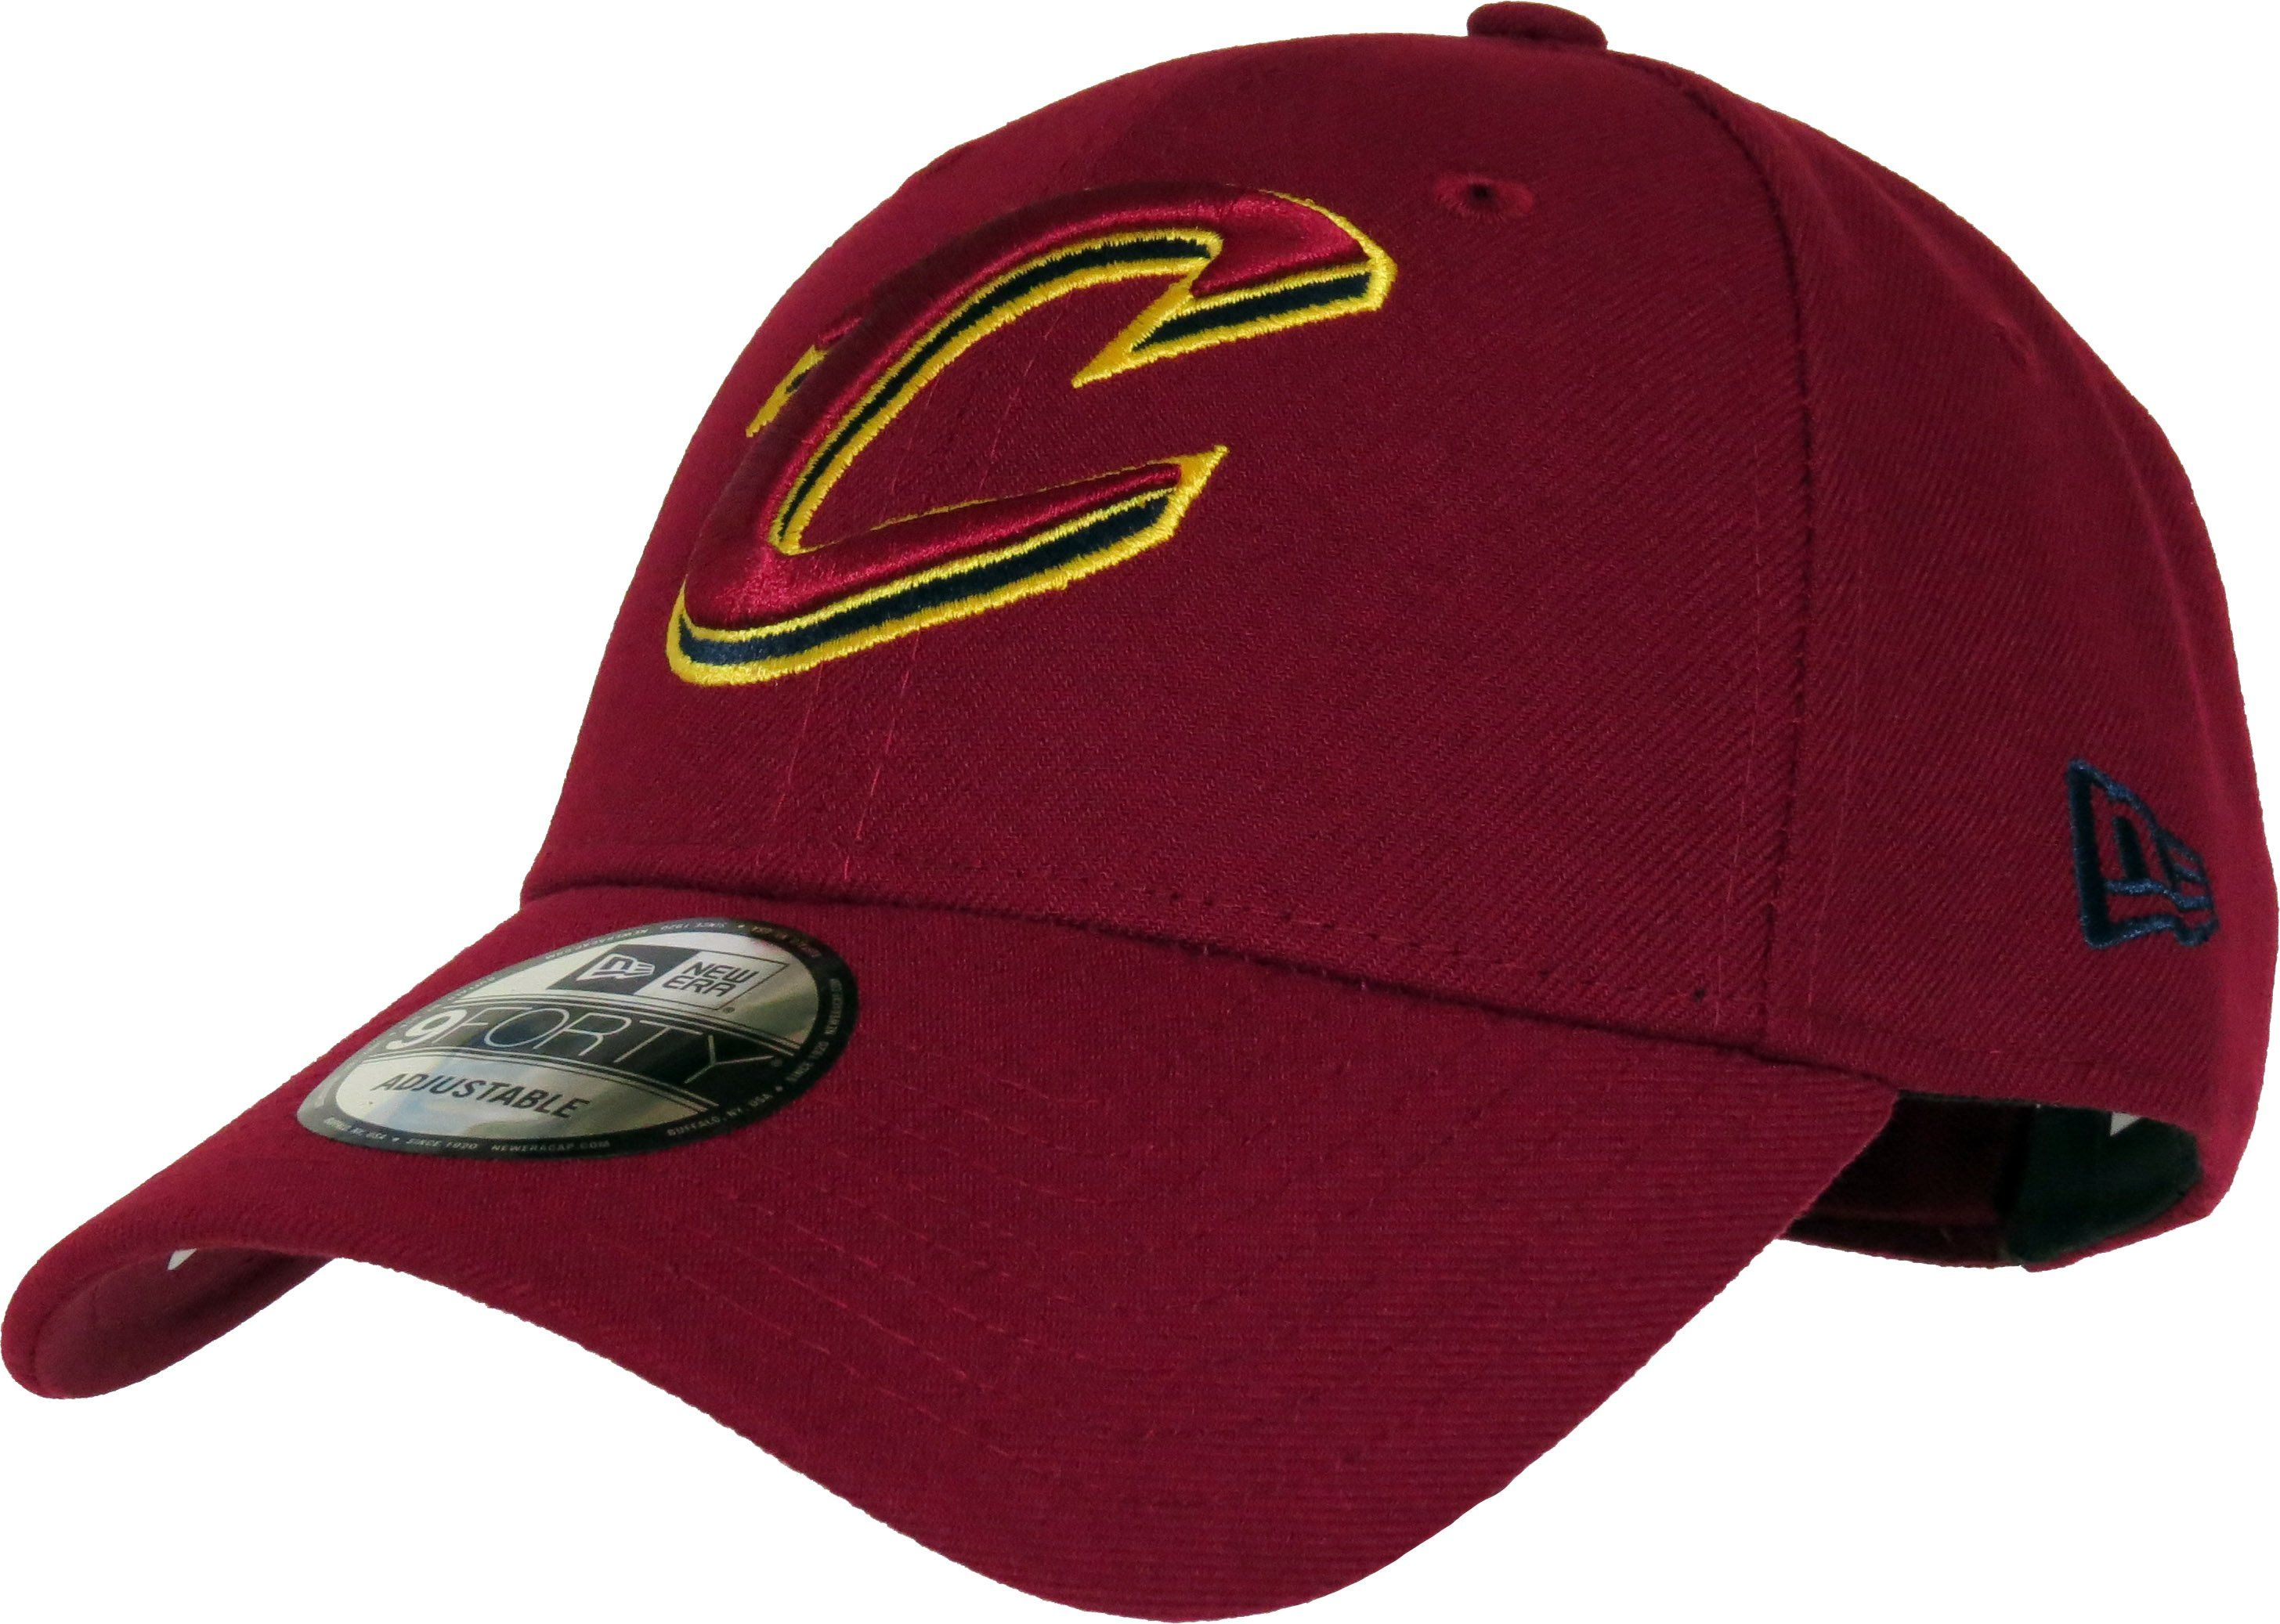 New Era 59Fifty Engineered Cap NBA Cleveland Cavaliers